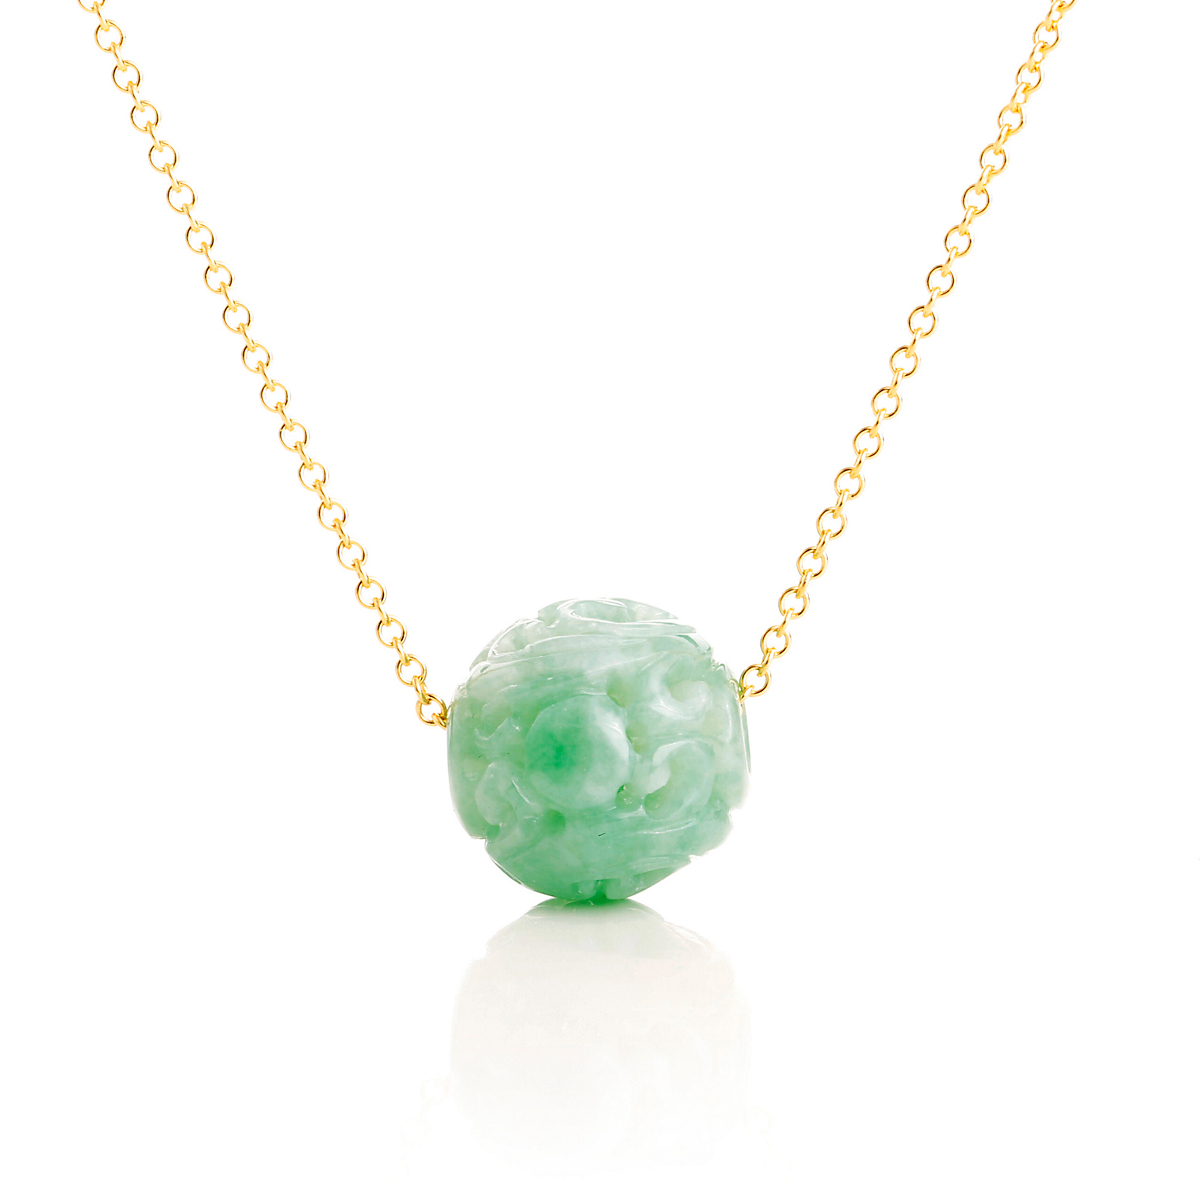 Gump's Green Jadeite Dragon Ball Pendant Necklace